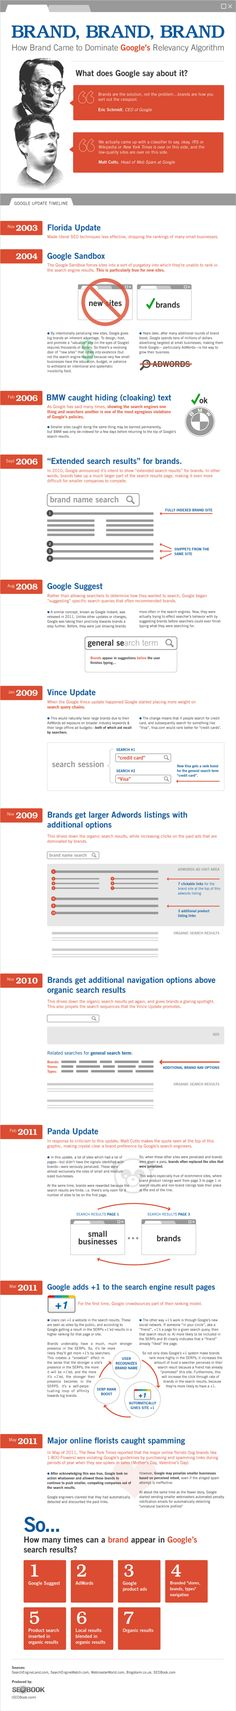 Brand building infographics - Google Search